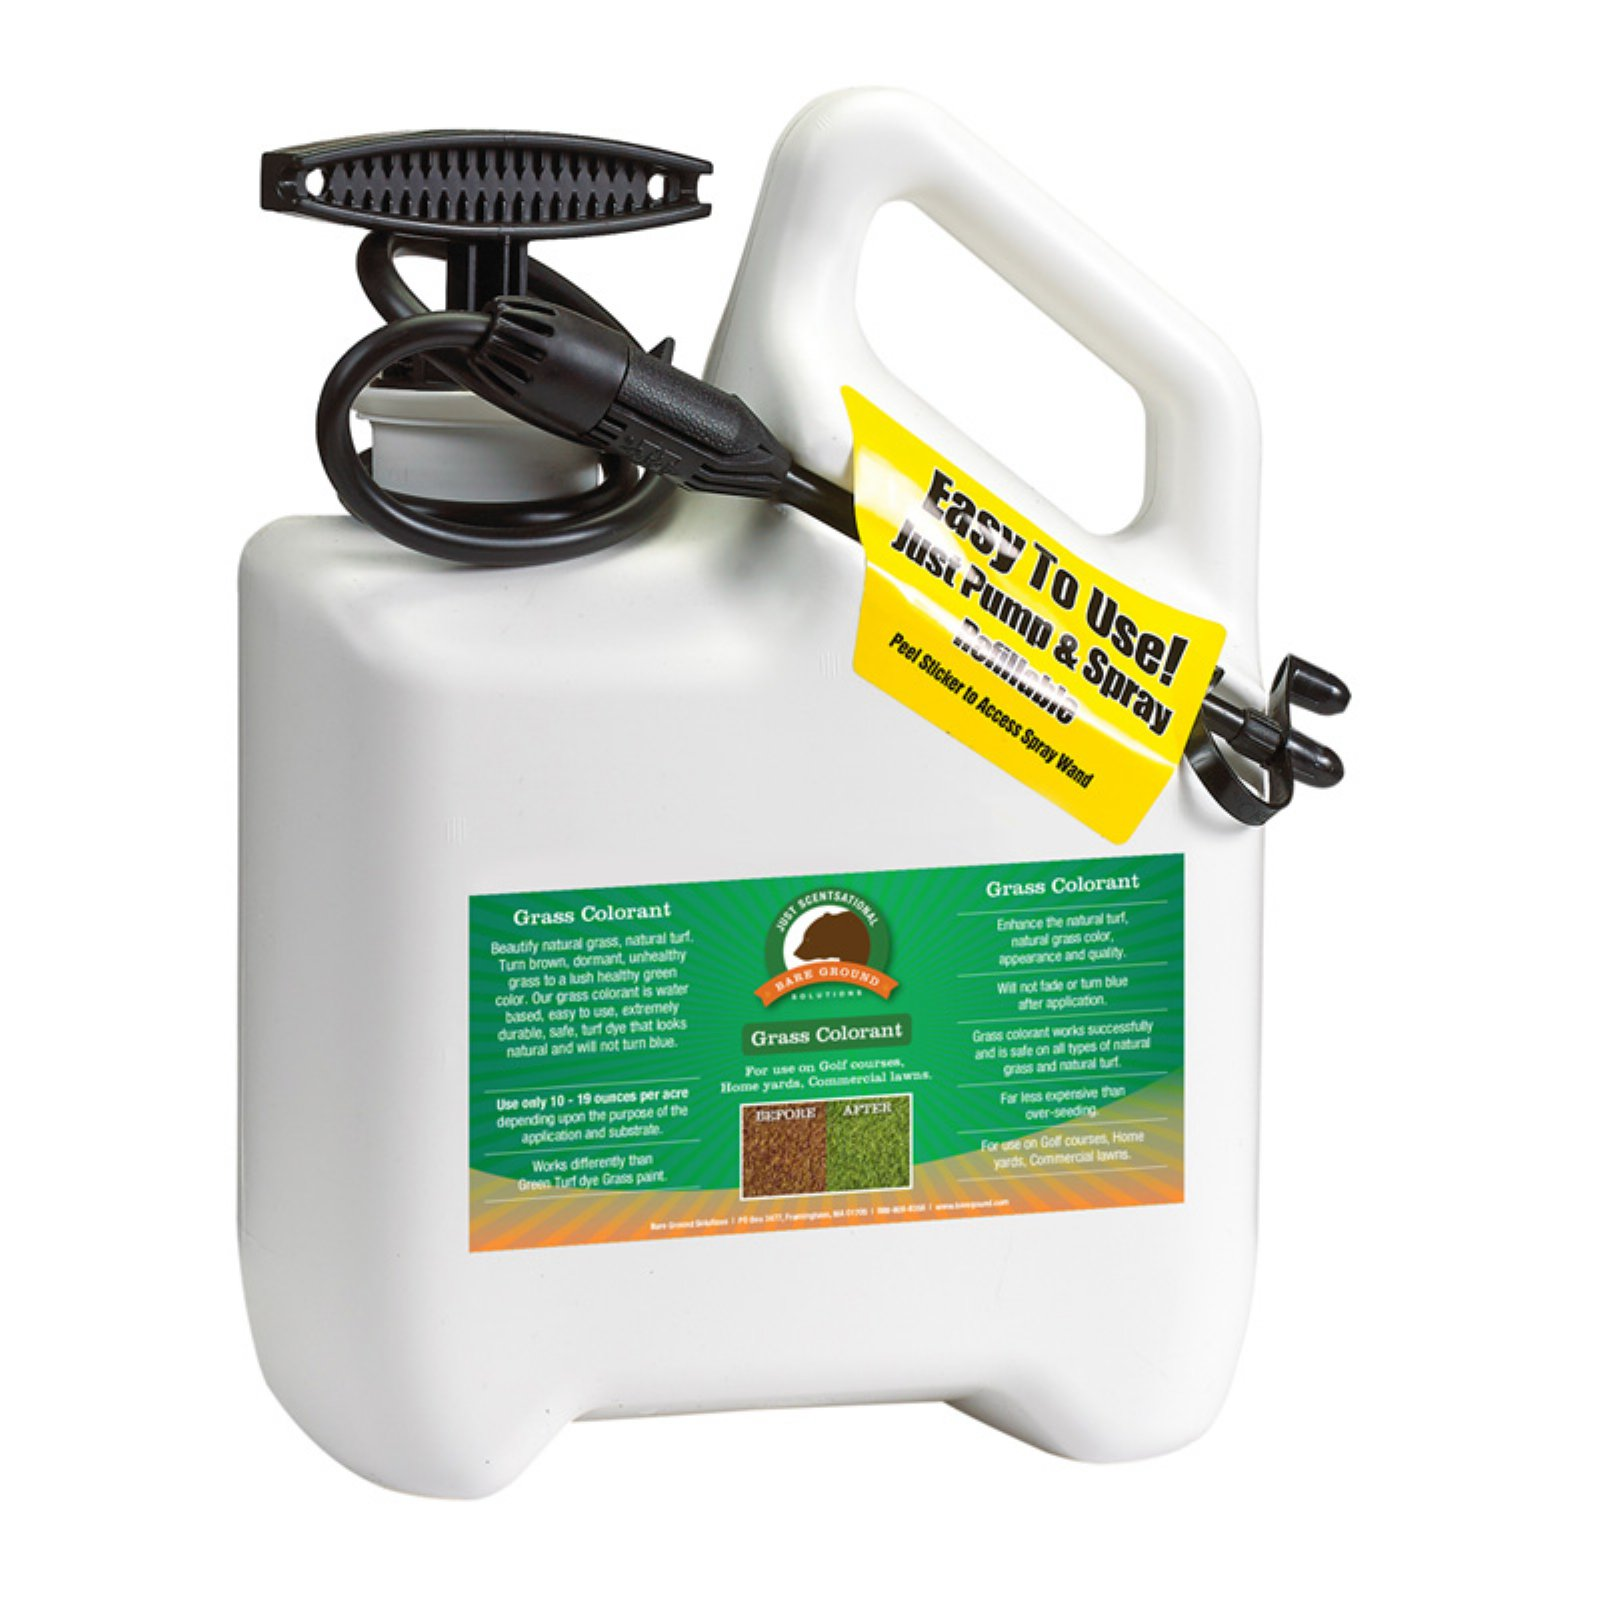 Just Scentsational Green Up Grass Colorant with Pump Sprayer by Bare Ground Systems